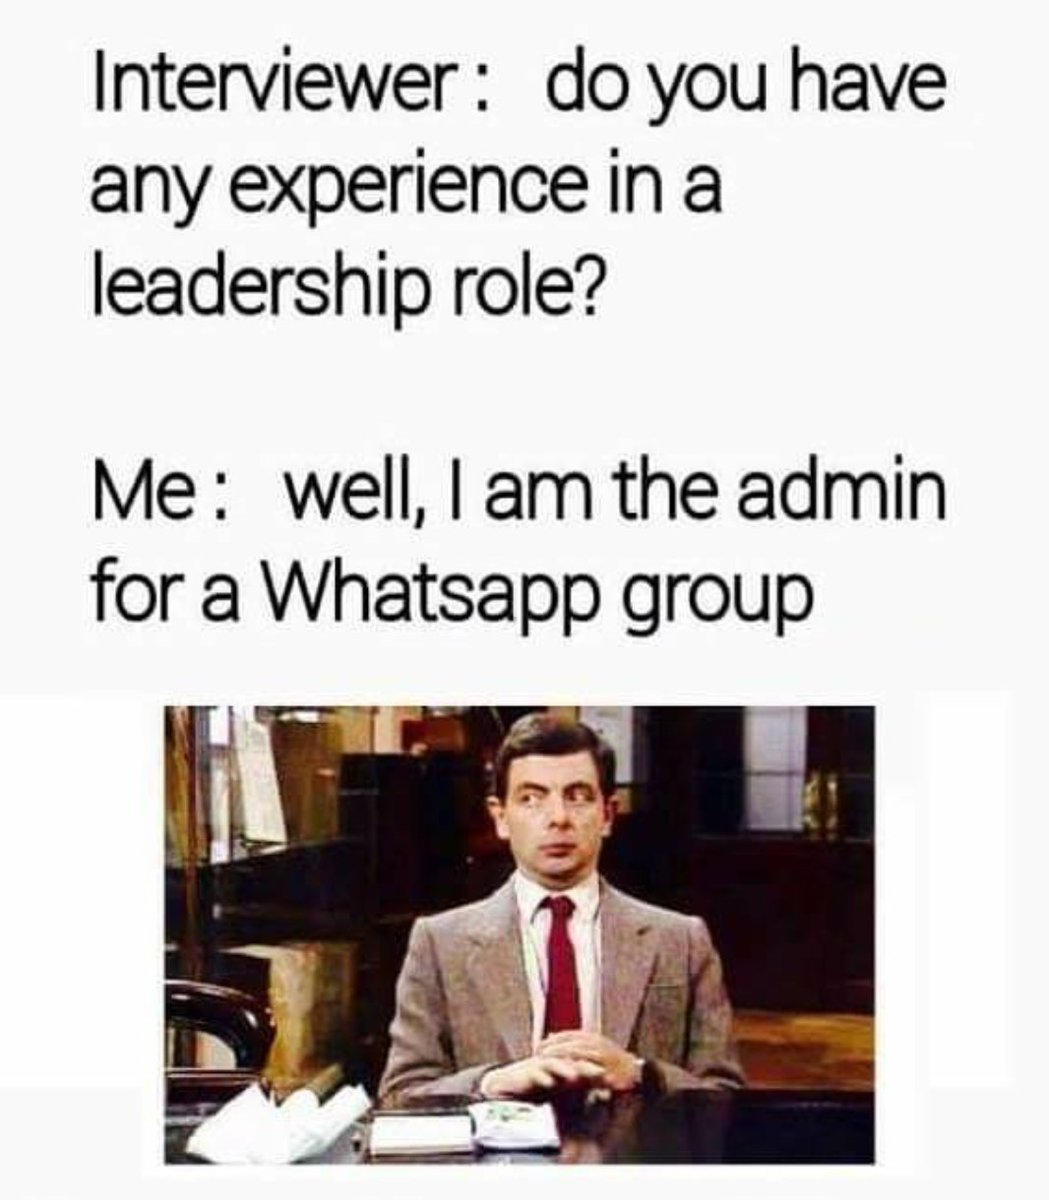 crazy minds games on twitter leadership experience whatsapp